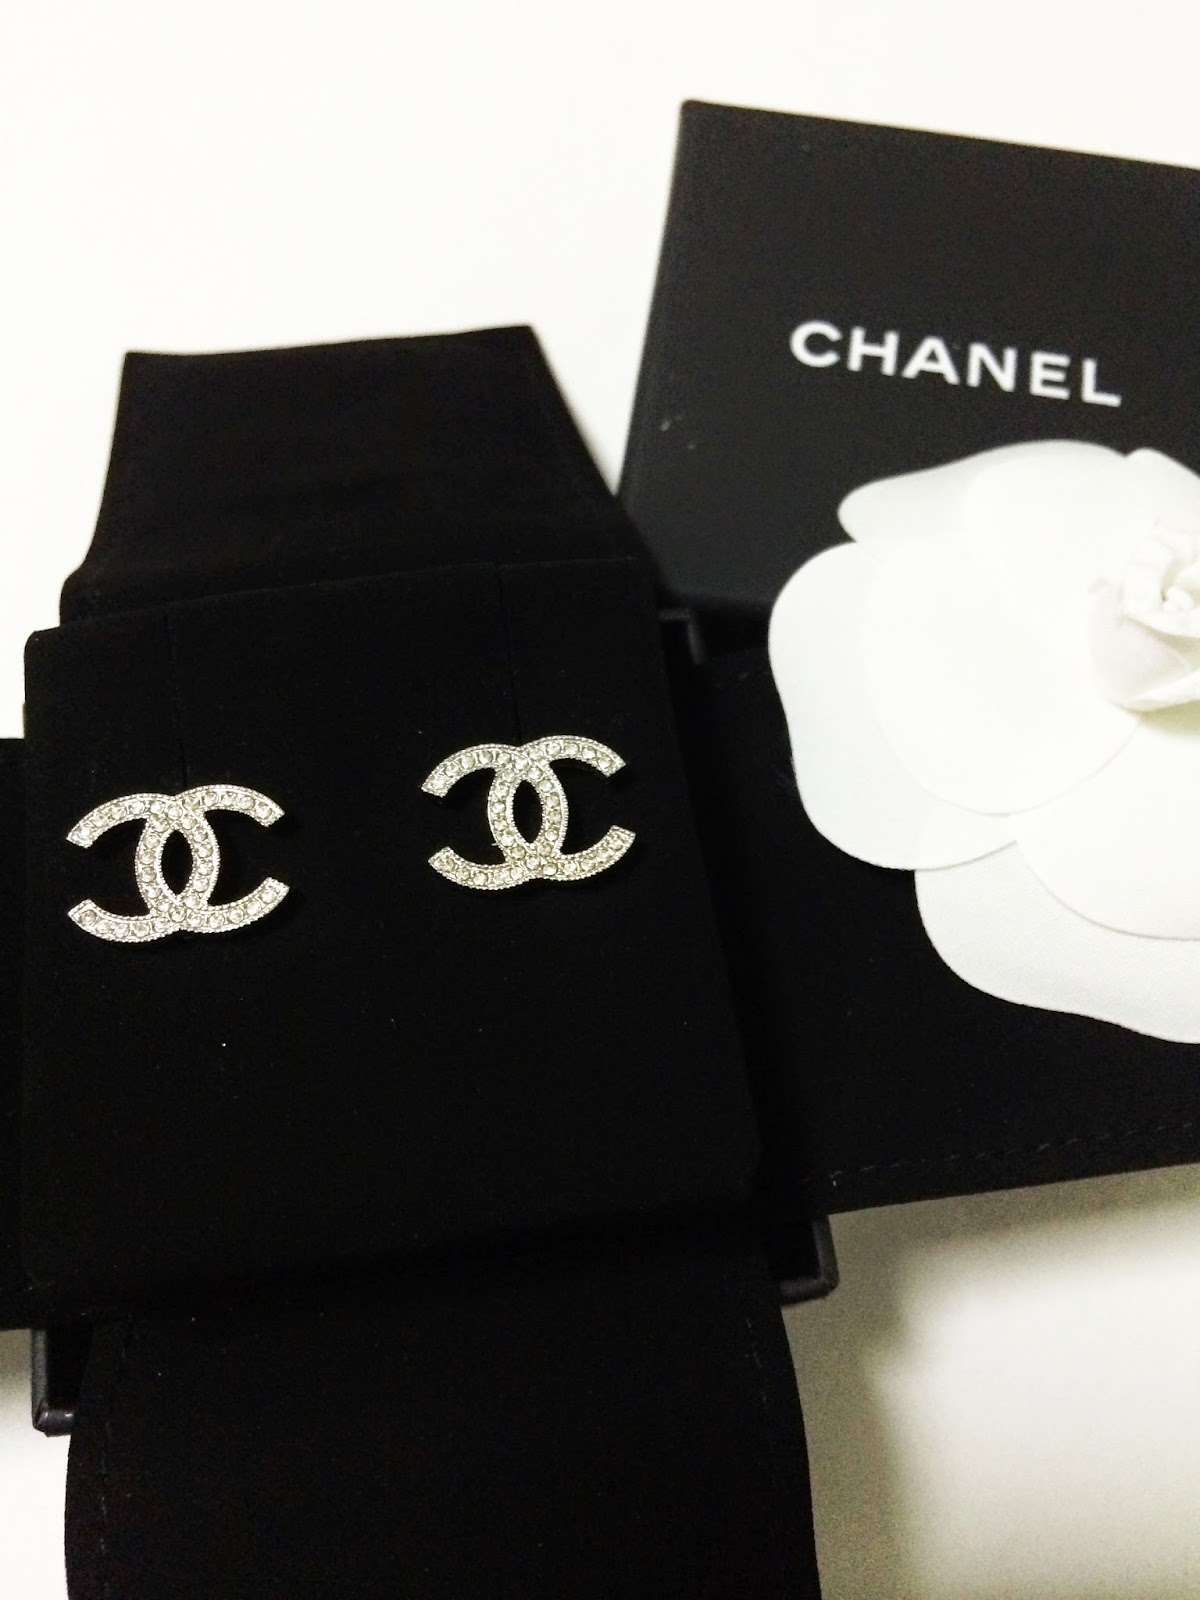 These Are Everything We Love About Chanel Iconic Clic Elegance With Timeless Eal For Today Tomorrow And Forever Super Brilliant Crystals